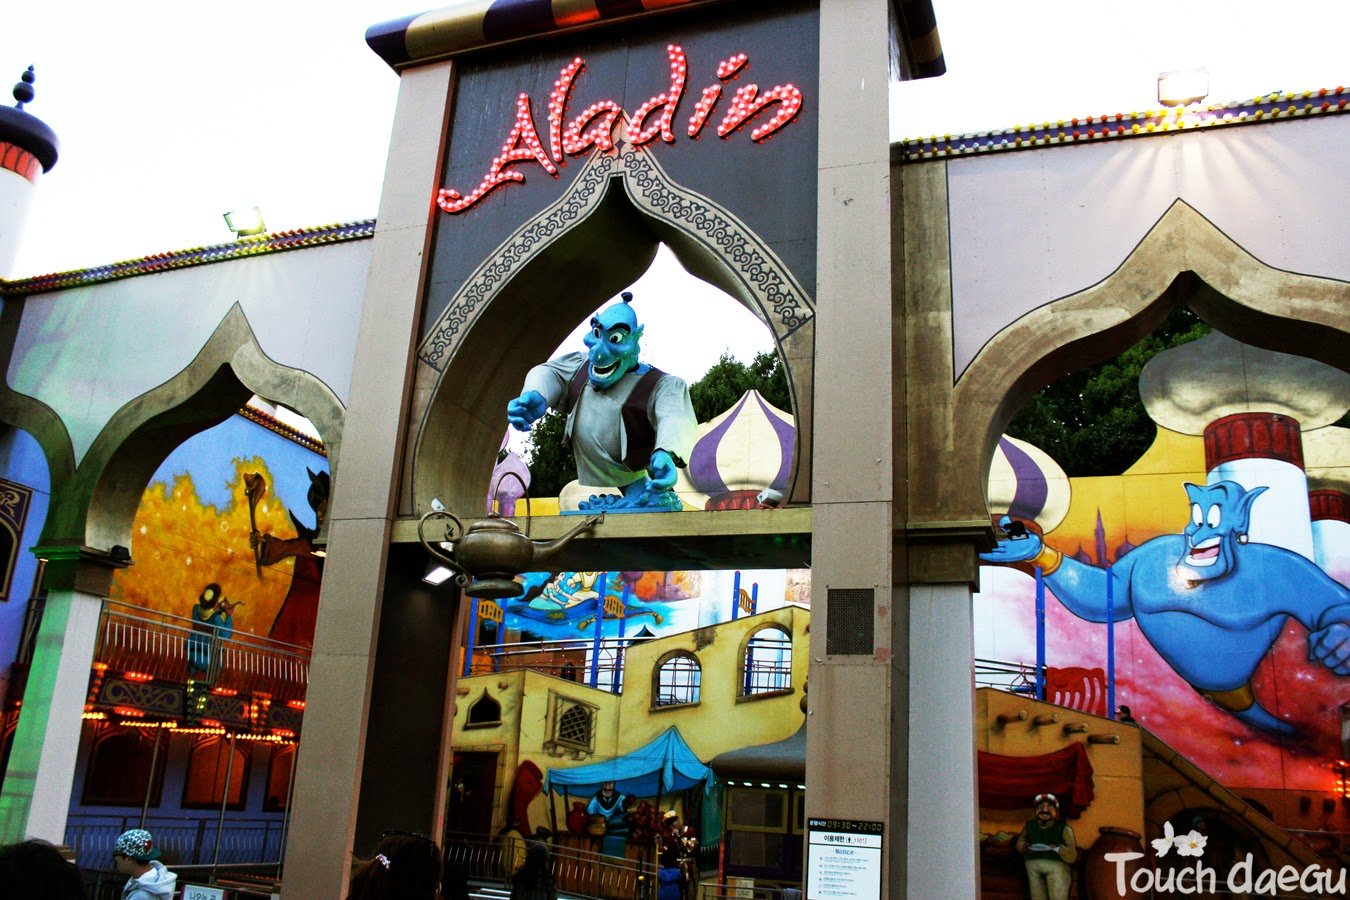 The ride named 'Aladin' in E-world